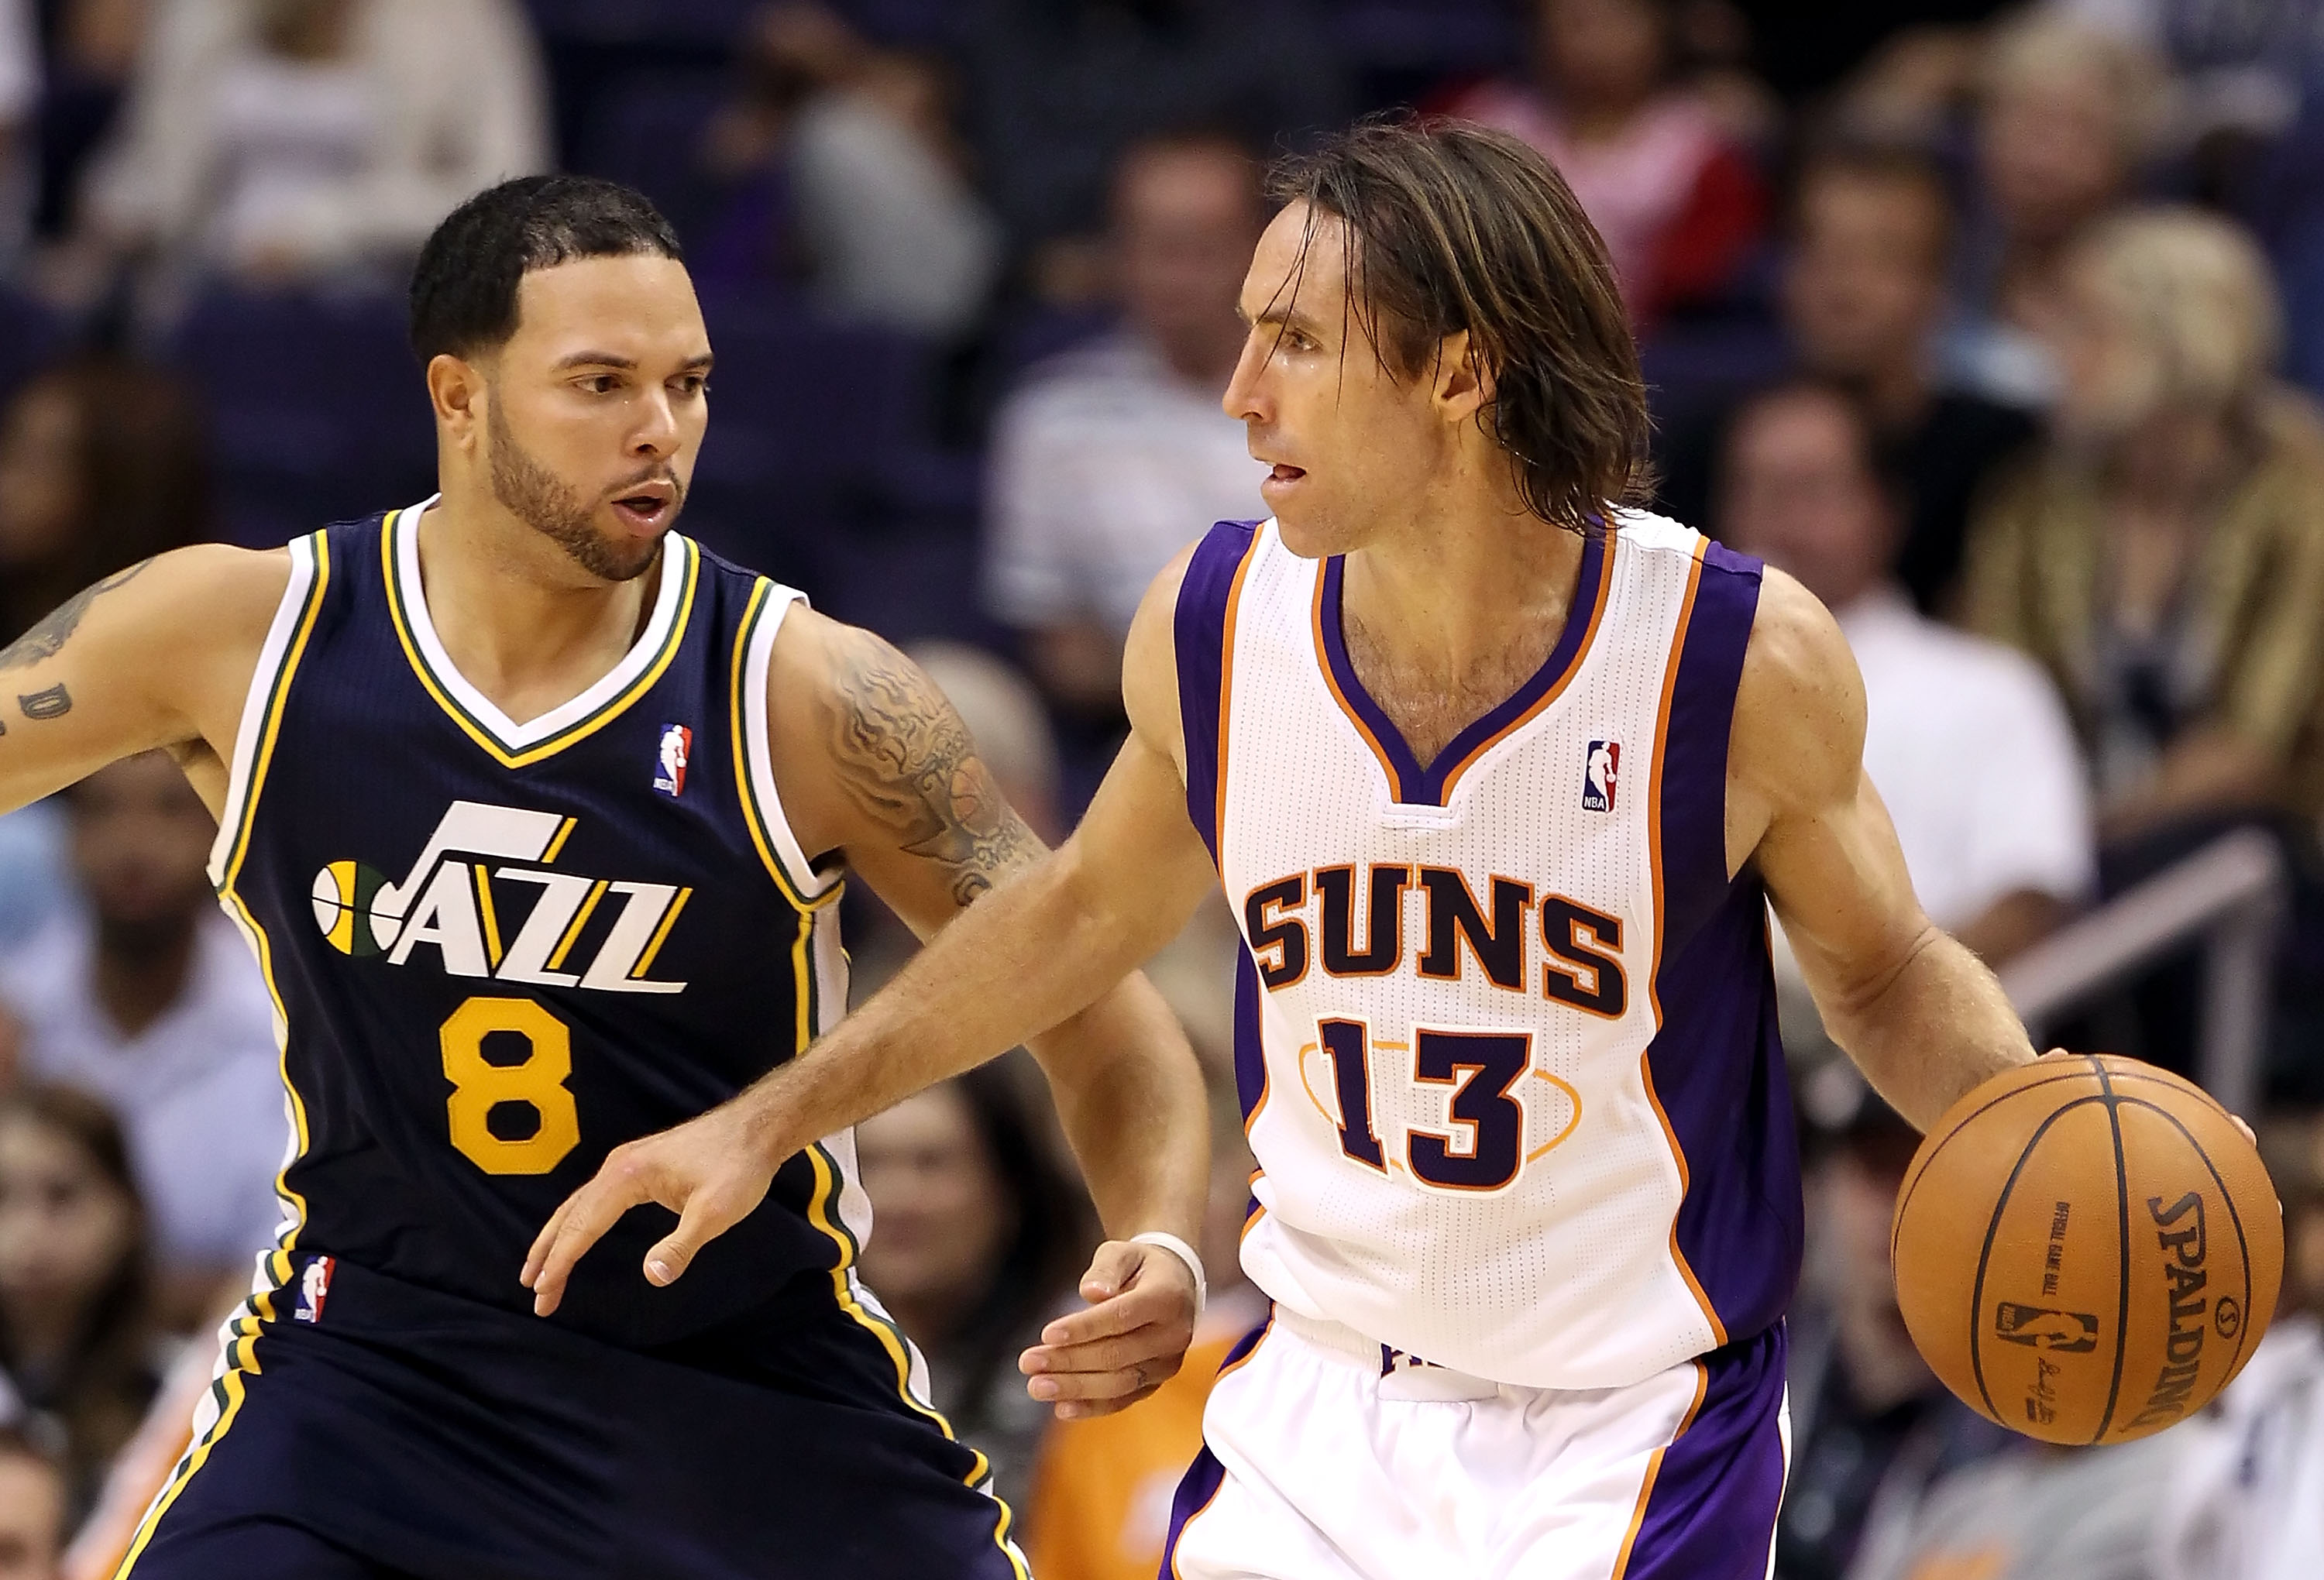 PHOENIX - OCTOBER 12:  Steve Nash #13 of the Phoenix Suns looks to pass the ball during the preseason NBA game against the Utah Jazz at US Airways Center on October 12, 2010 in Phoenix, Arizona. NOTE TO USER: User expressly acknowledges and agrees that, b